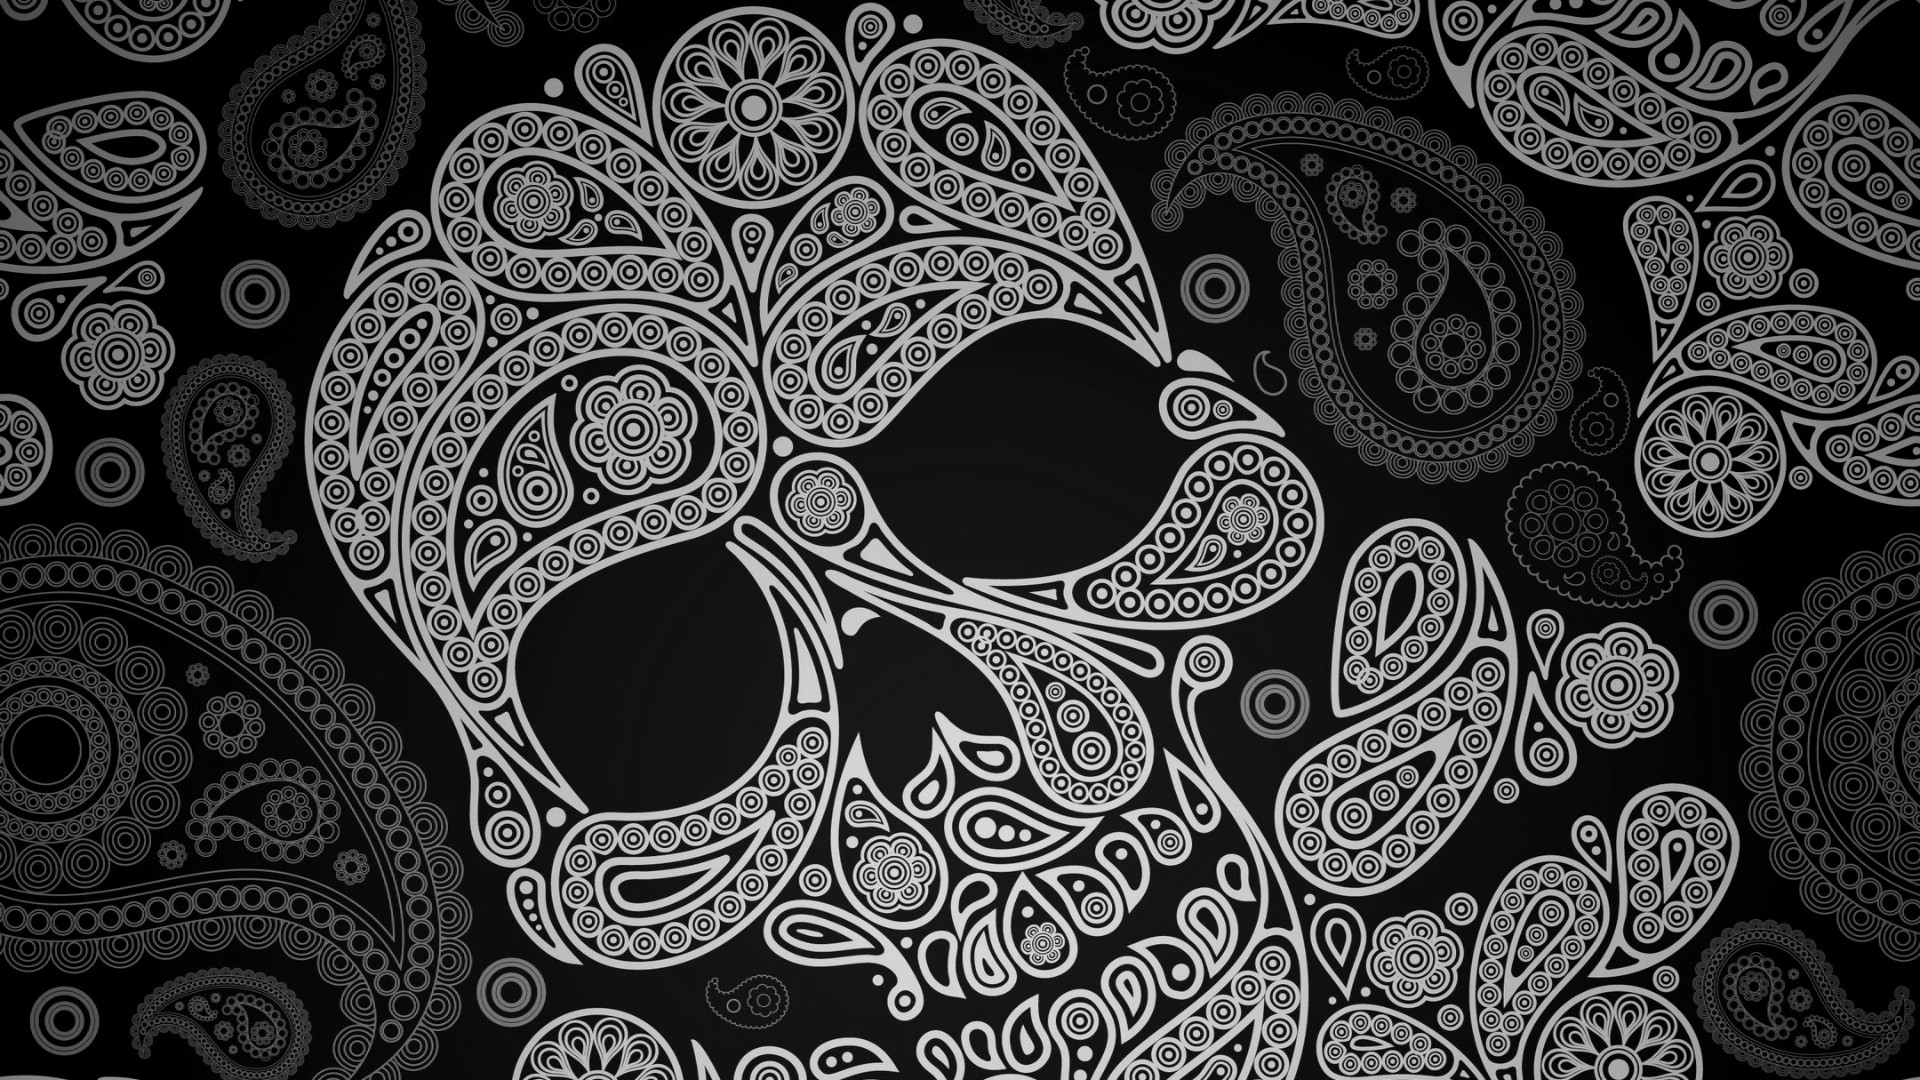 Sugar skull wallpaper download free cool full hd wallpapers for sugar voltagebd Choice Image